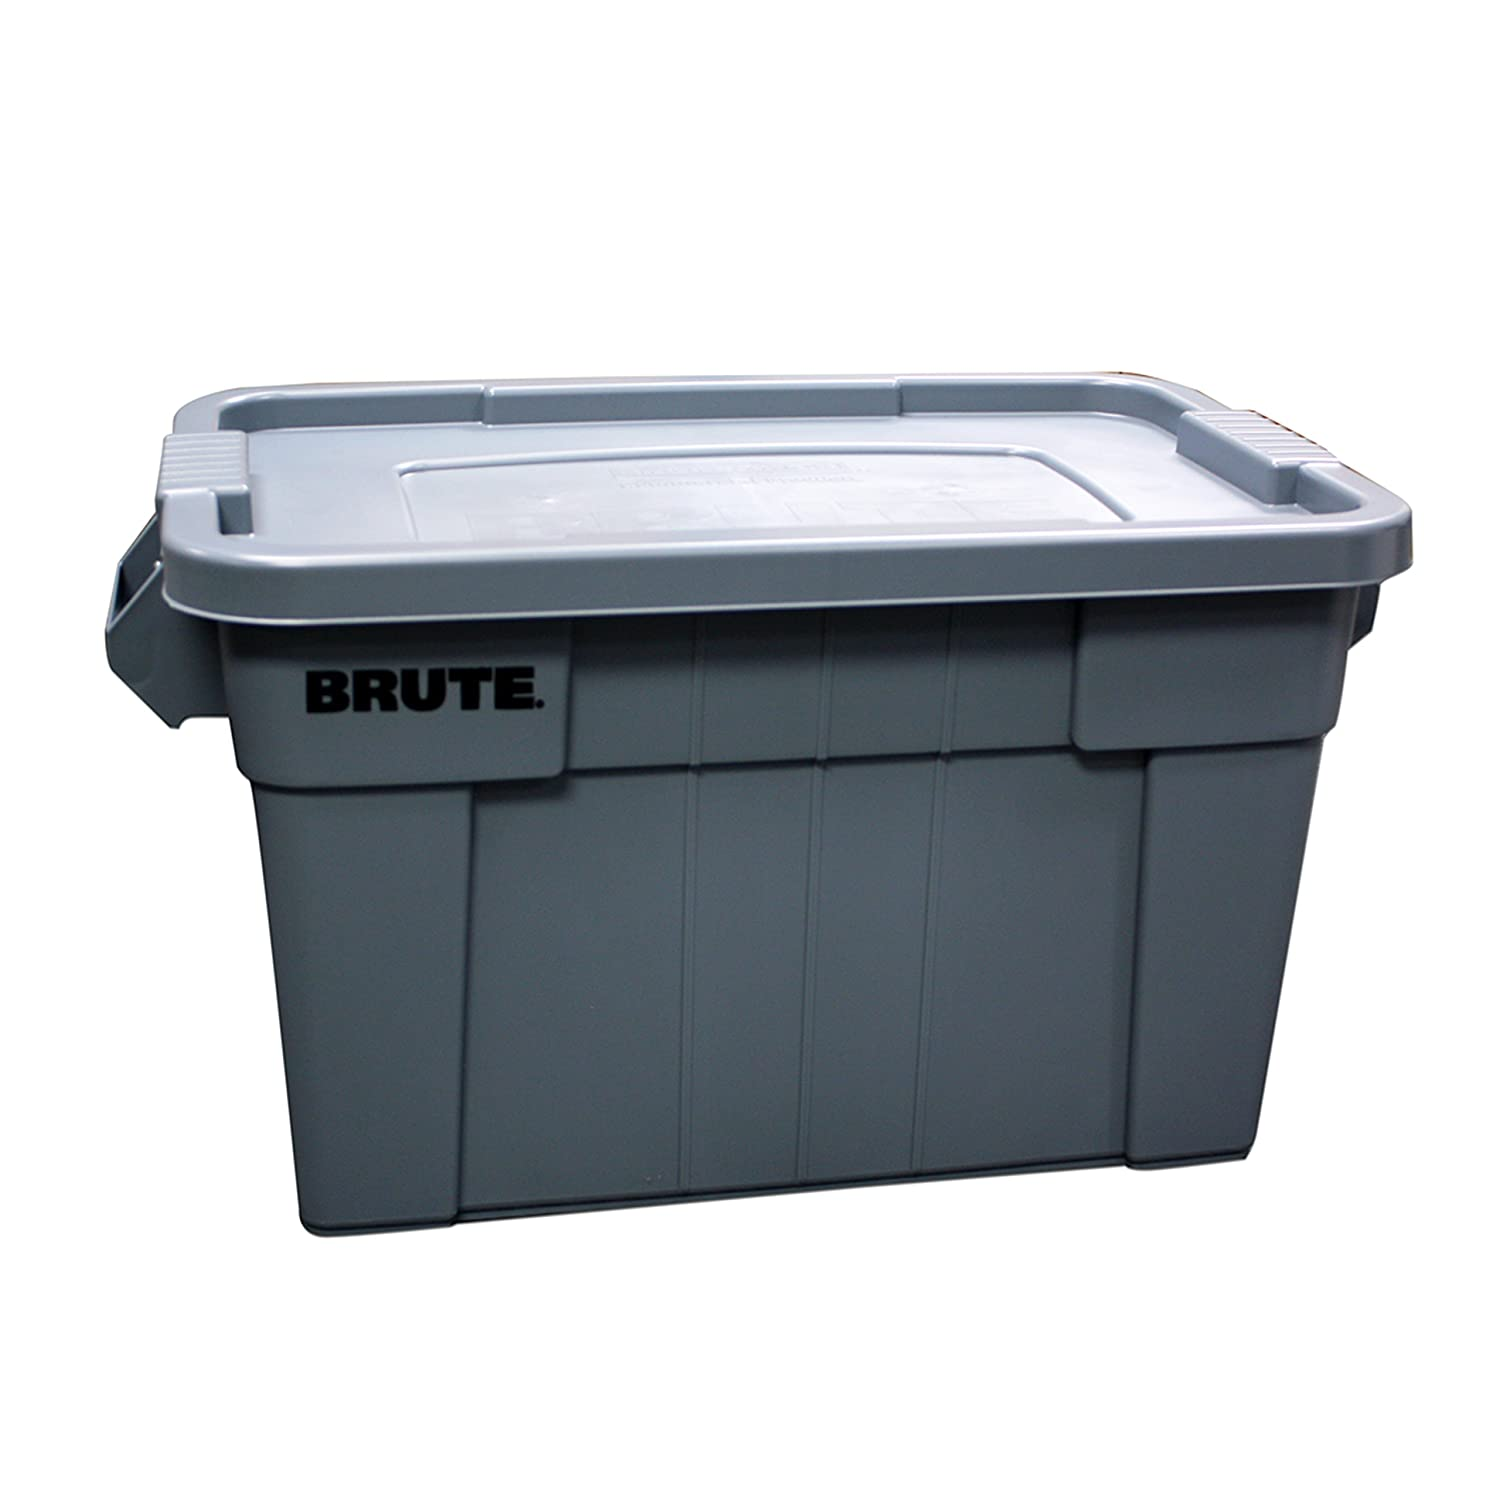 Rubbermaid Commercial Products BRUTE Tote Storage Container with Lid, 20-Gallon, Gray (FG9S3100GRAY)